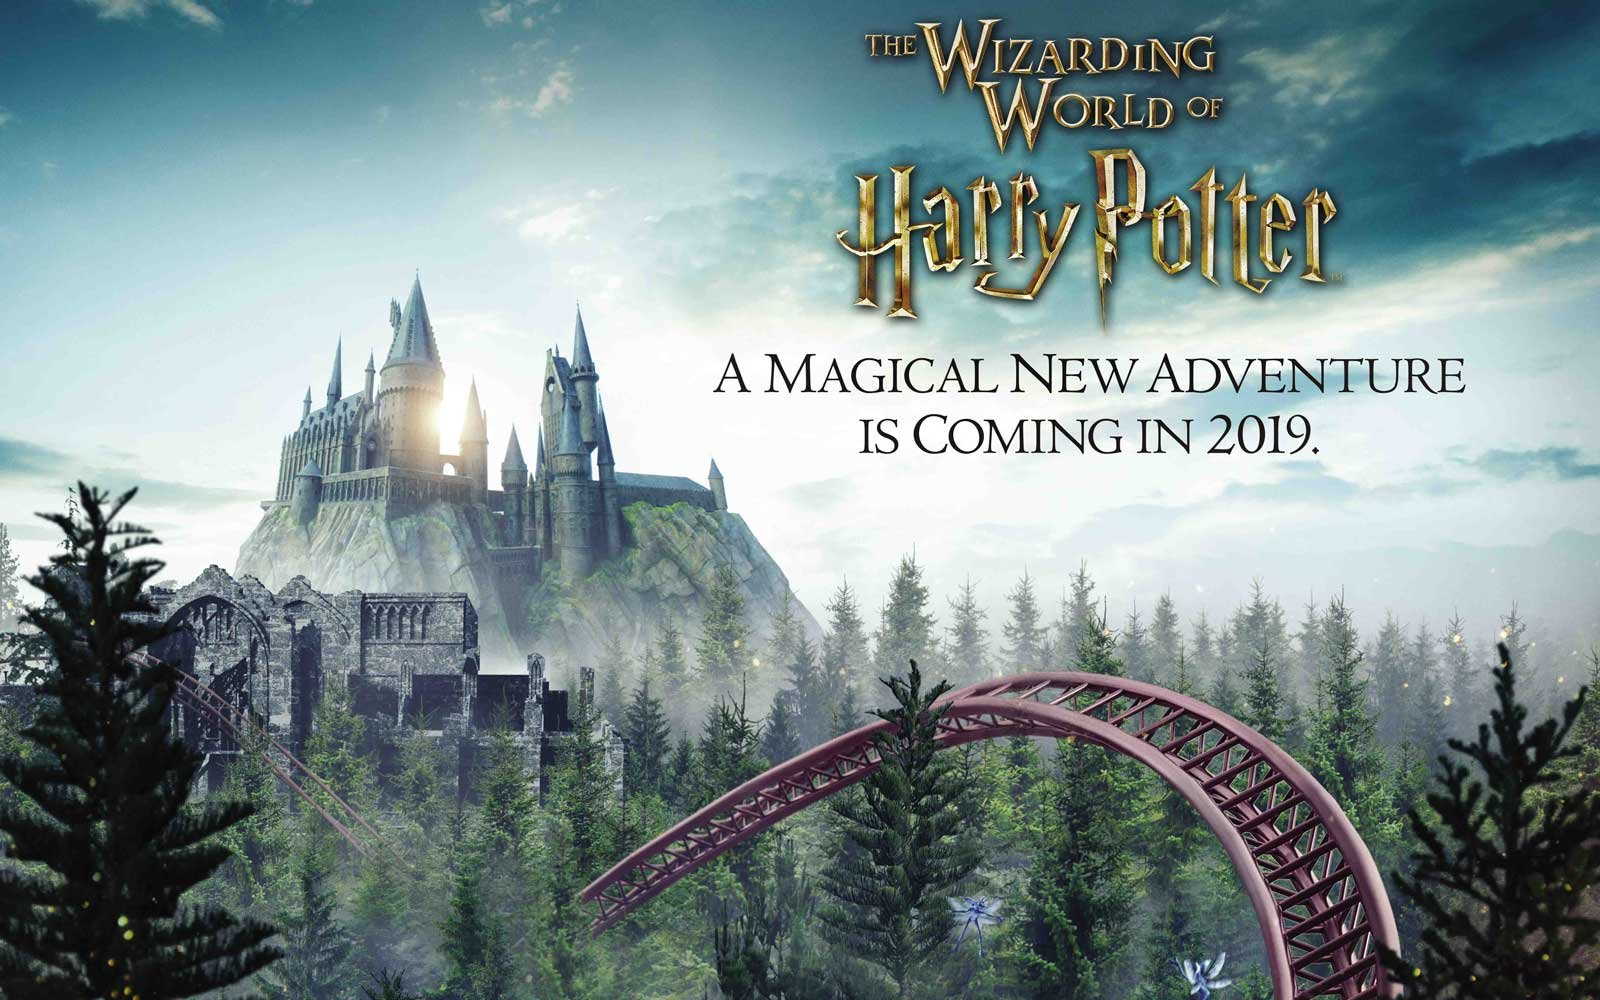 Harry Potter Coaster coming to Universal Islands of Adventure